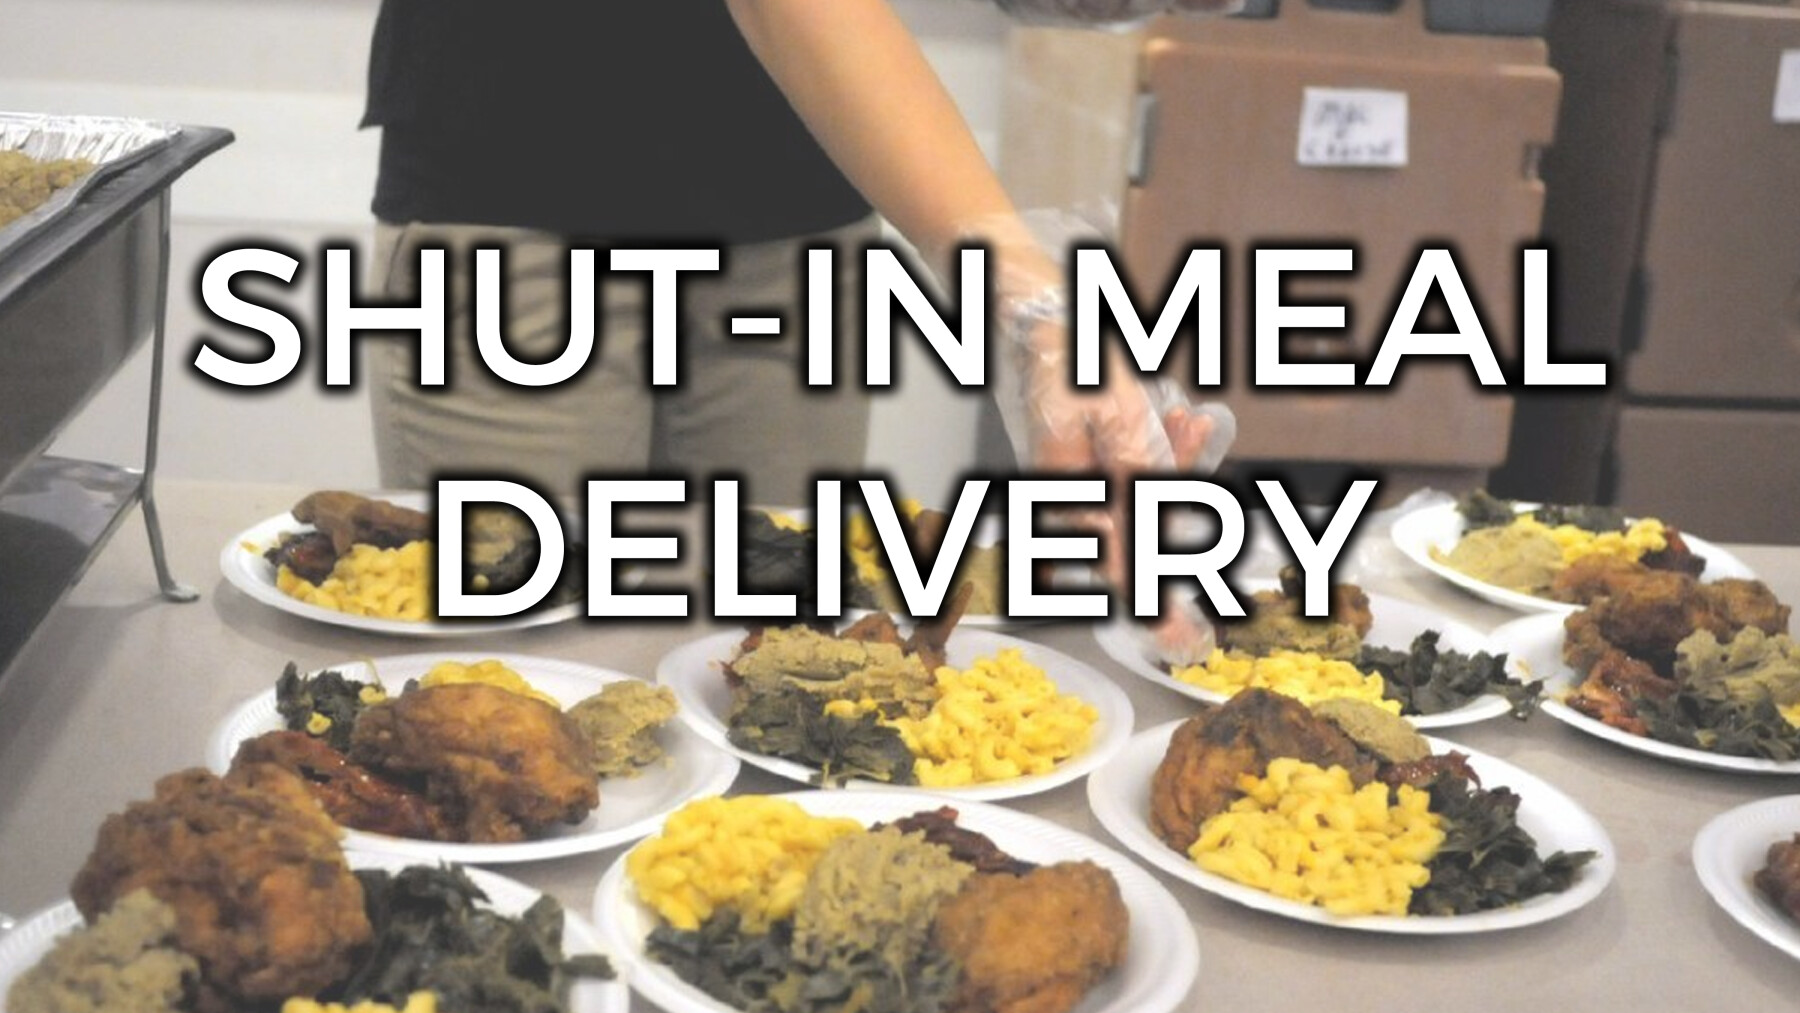 Shut-In Meal Delivery